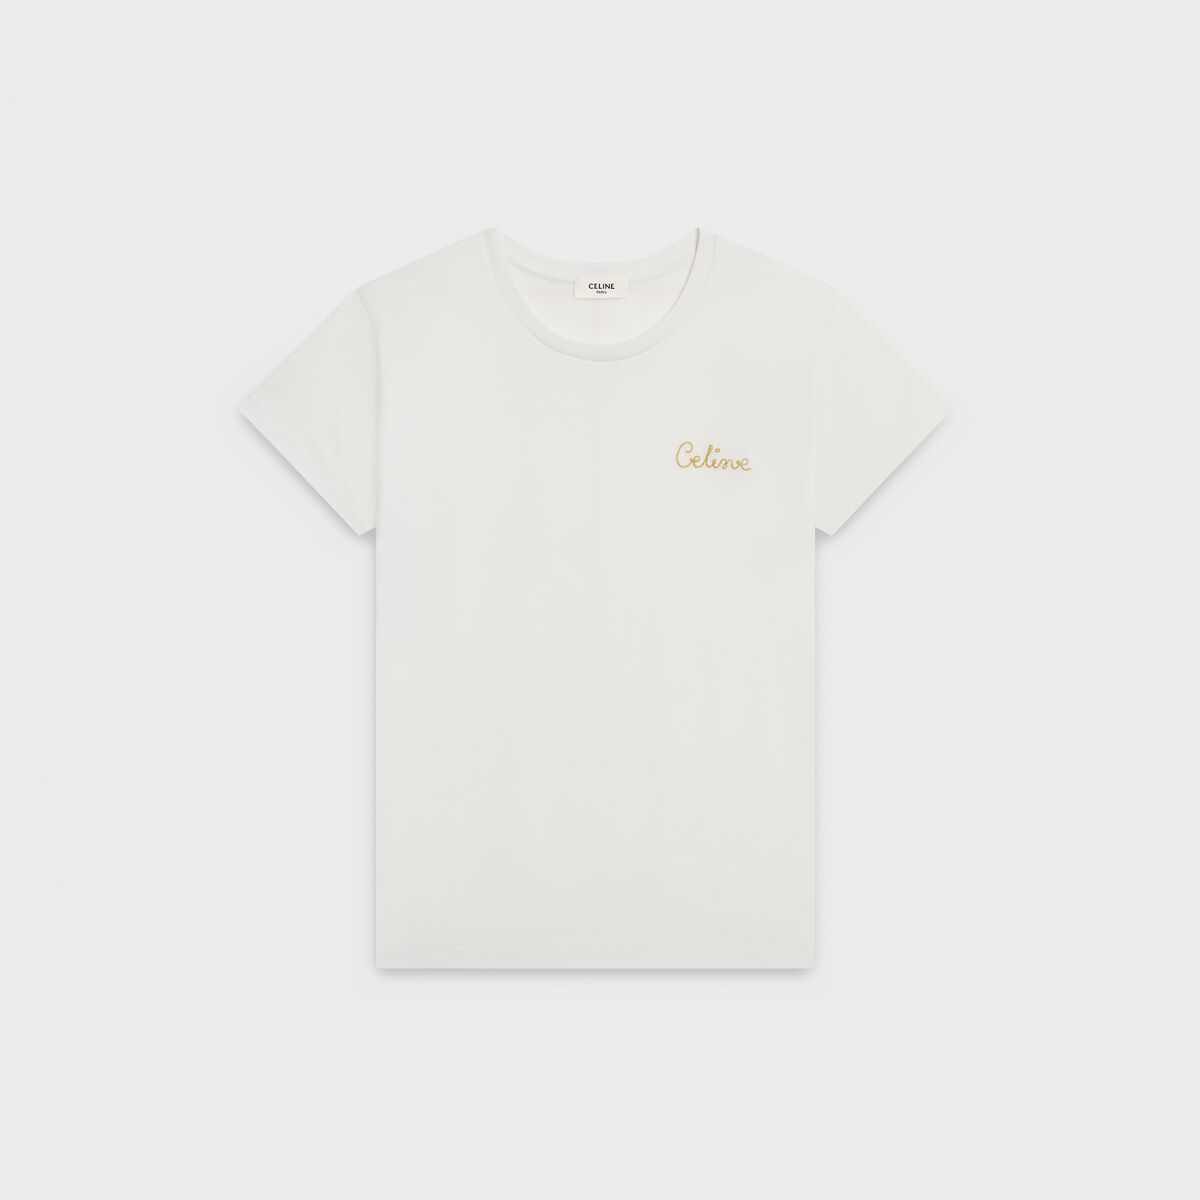 Celine Embroidered T Shirt In Cotton In 2021 Sweatshirt Shirt Embroidered Tshirt Shirts [ 1200 x 1200 Pixel ]